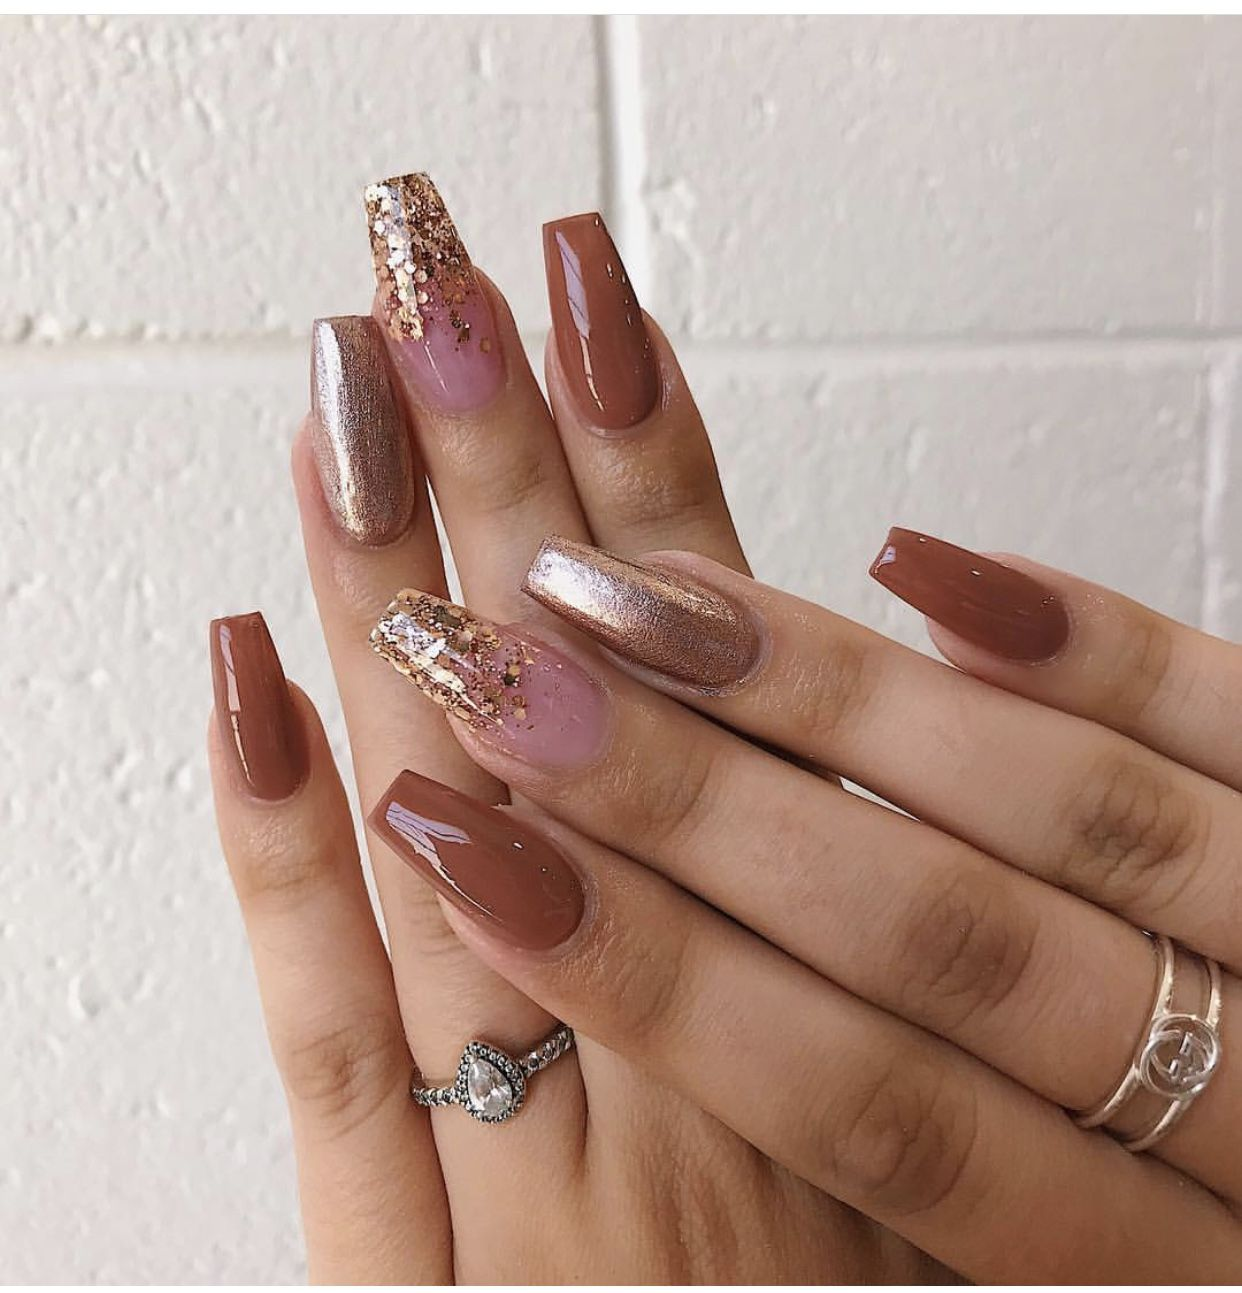 1,200 Likes, 27 Comments - Young Nails Inc (@youngnailsinc